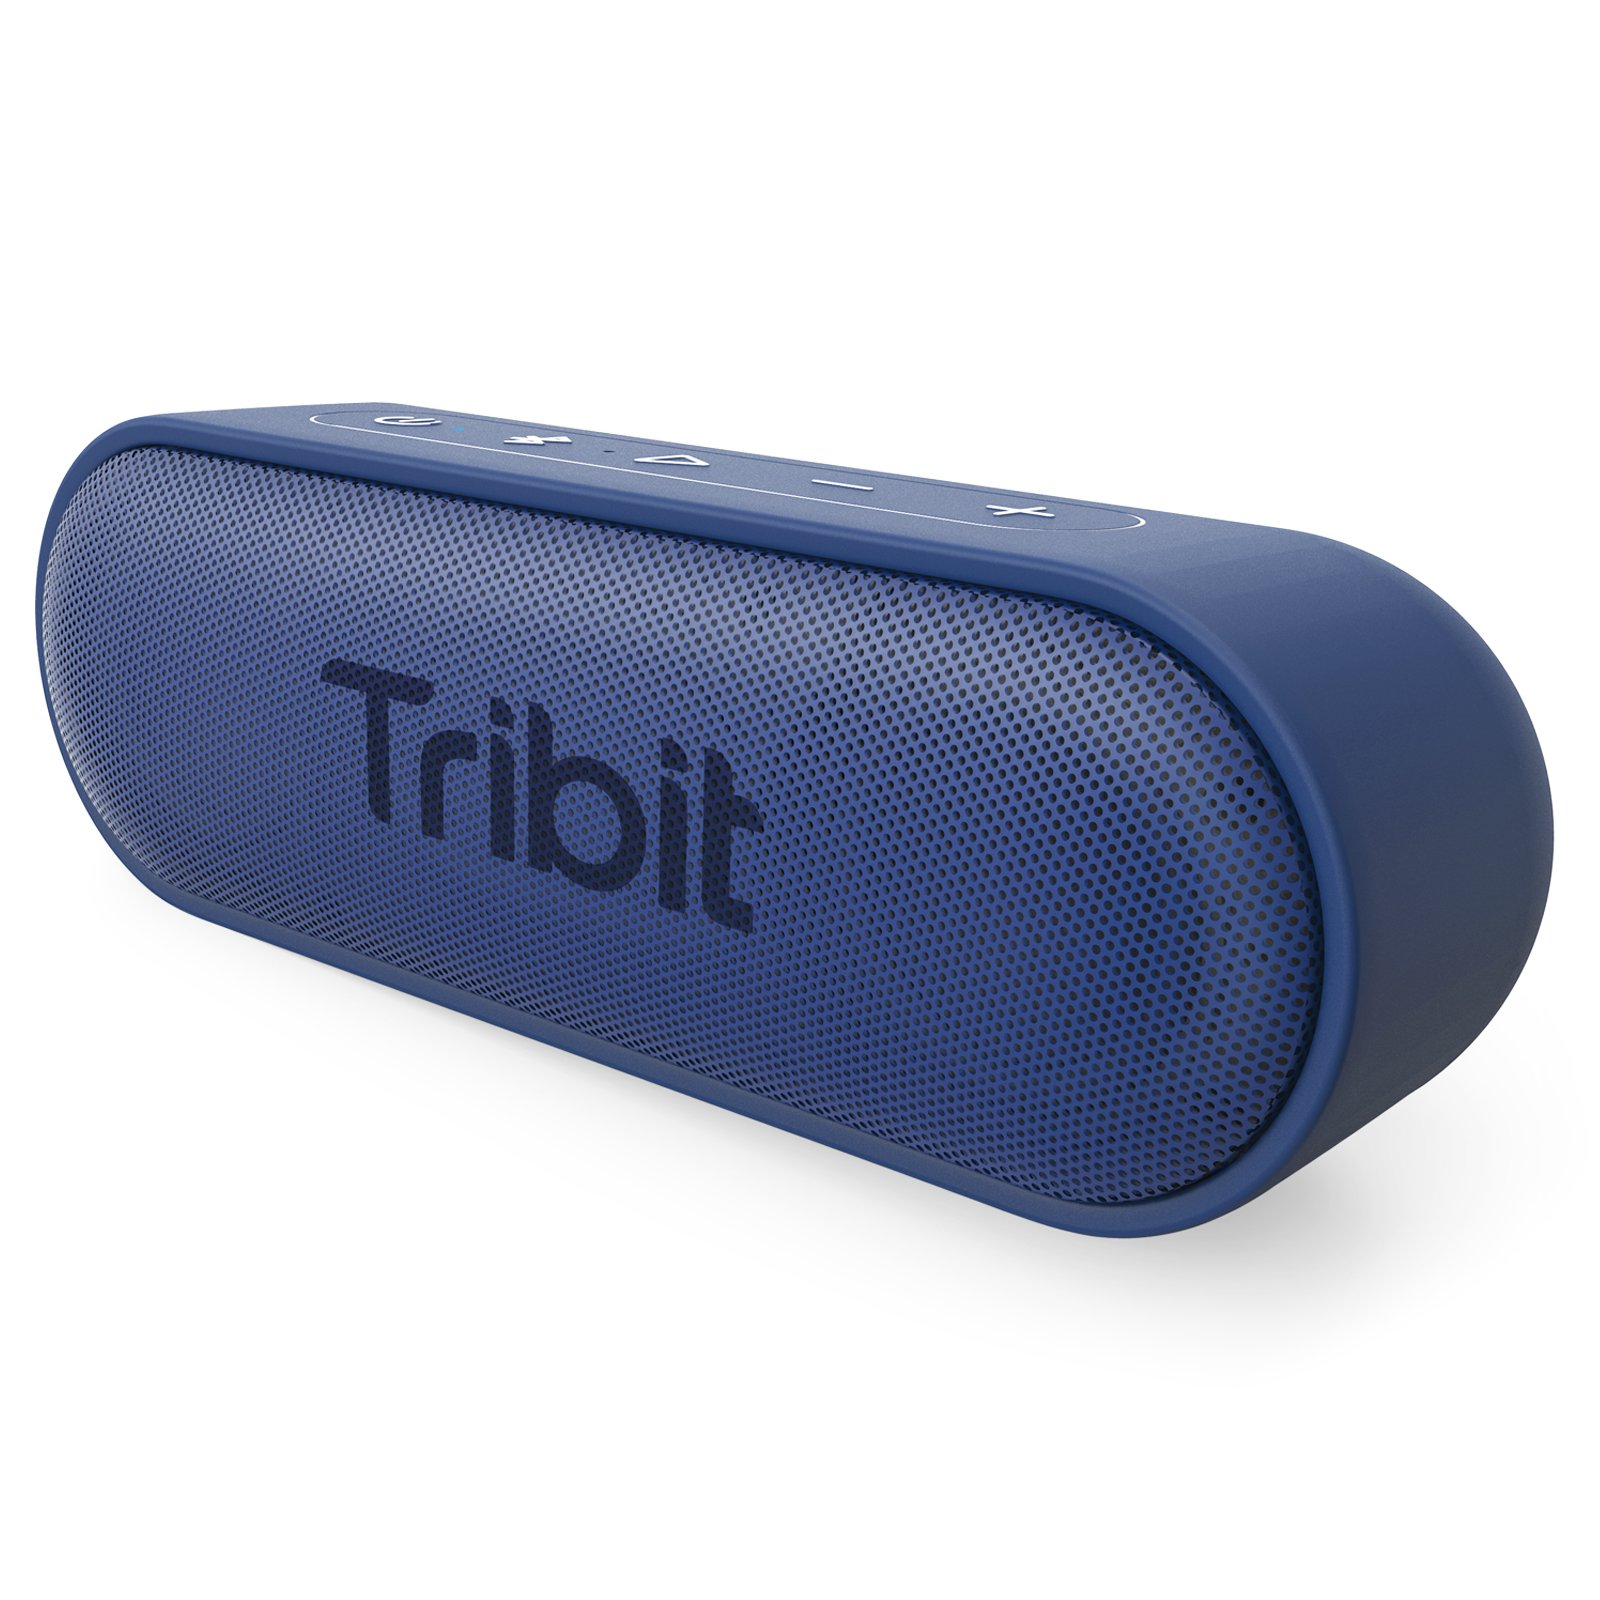 Tribit XSound Go Bluetooth Speakers - 12W Portable Speaker Loud Stereo Sound, Rich Bass, IPX7 Waterproof,24 Hour Playtime, 66 ft Bluetooth Range & Built-in Mic Outdoor Wireless Speaker (Blue)